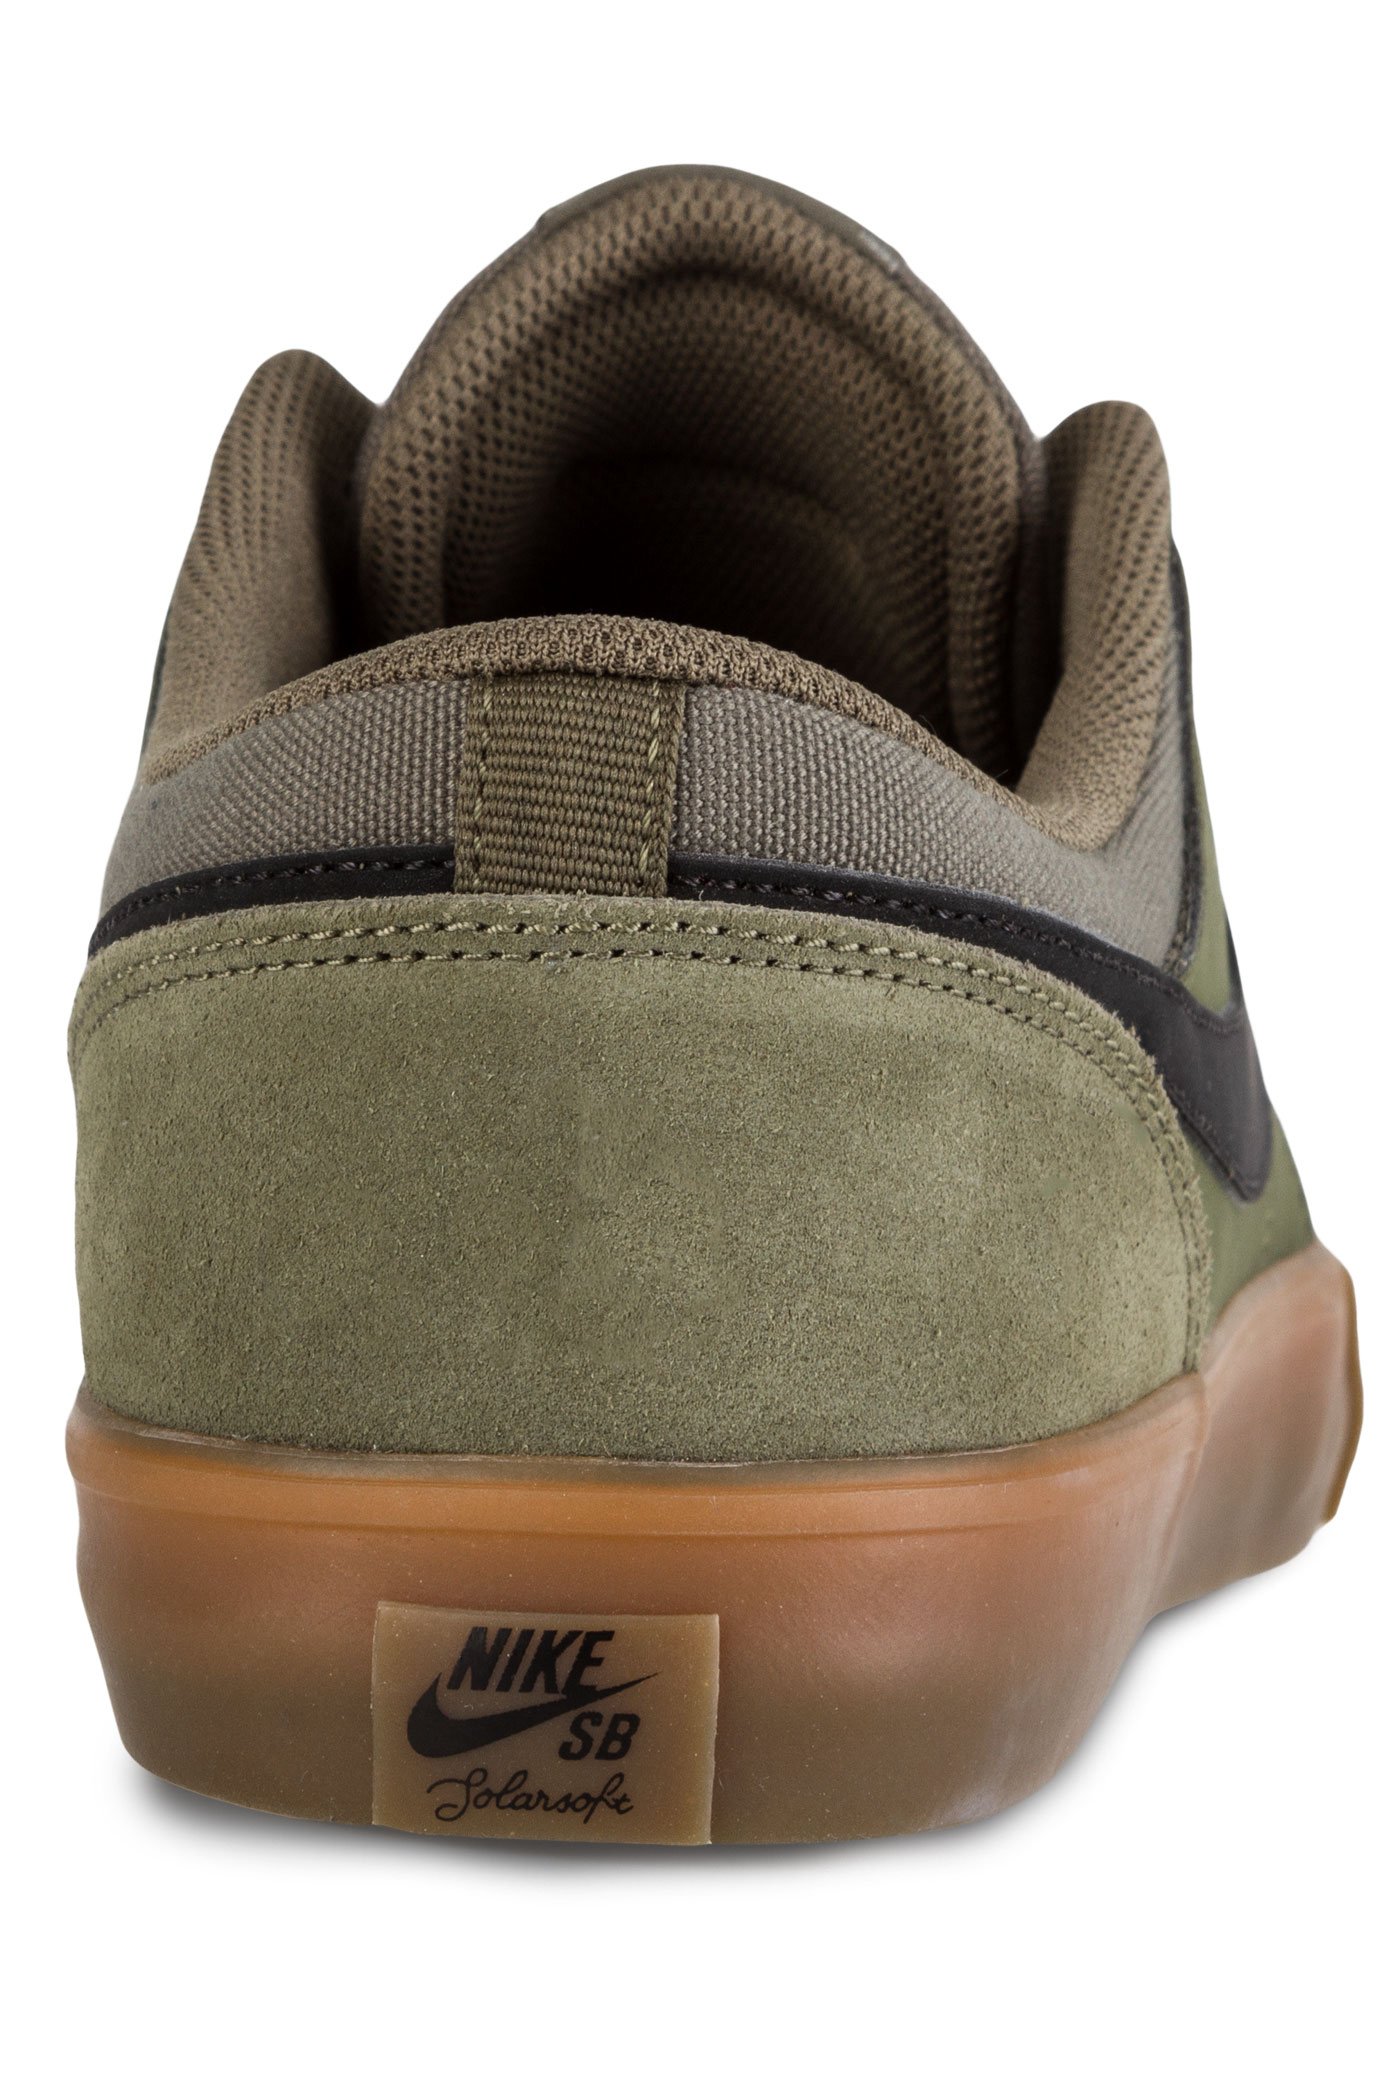 nike sb solarsoft portmore ii schuh medium olive black kaufen bei skatedeluxe. Black Bedroom Furniture Sets. Home Design Ideas